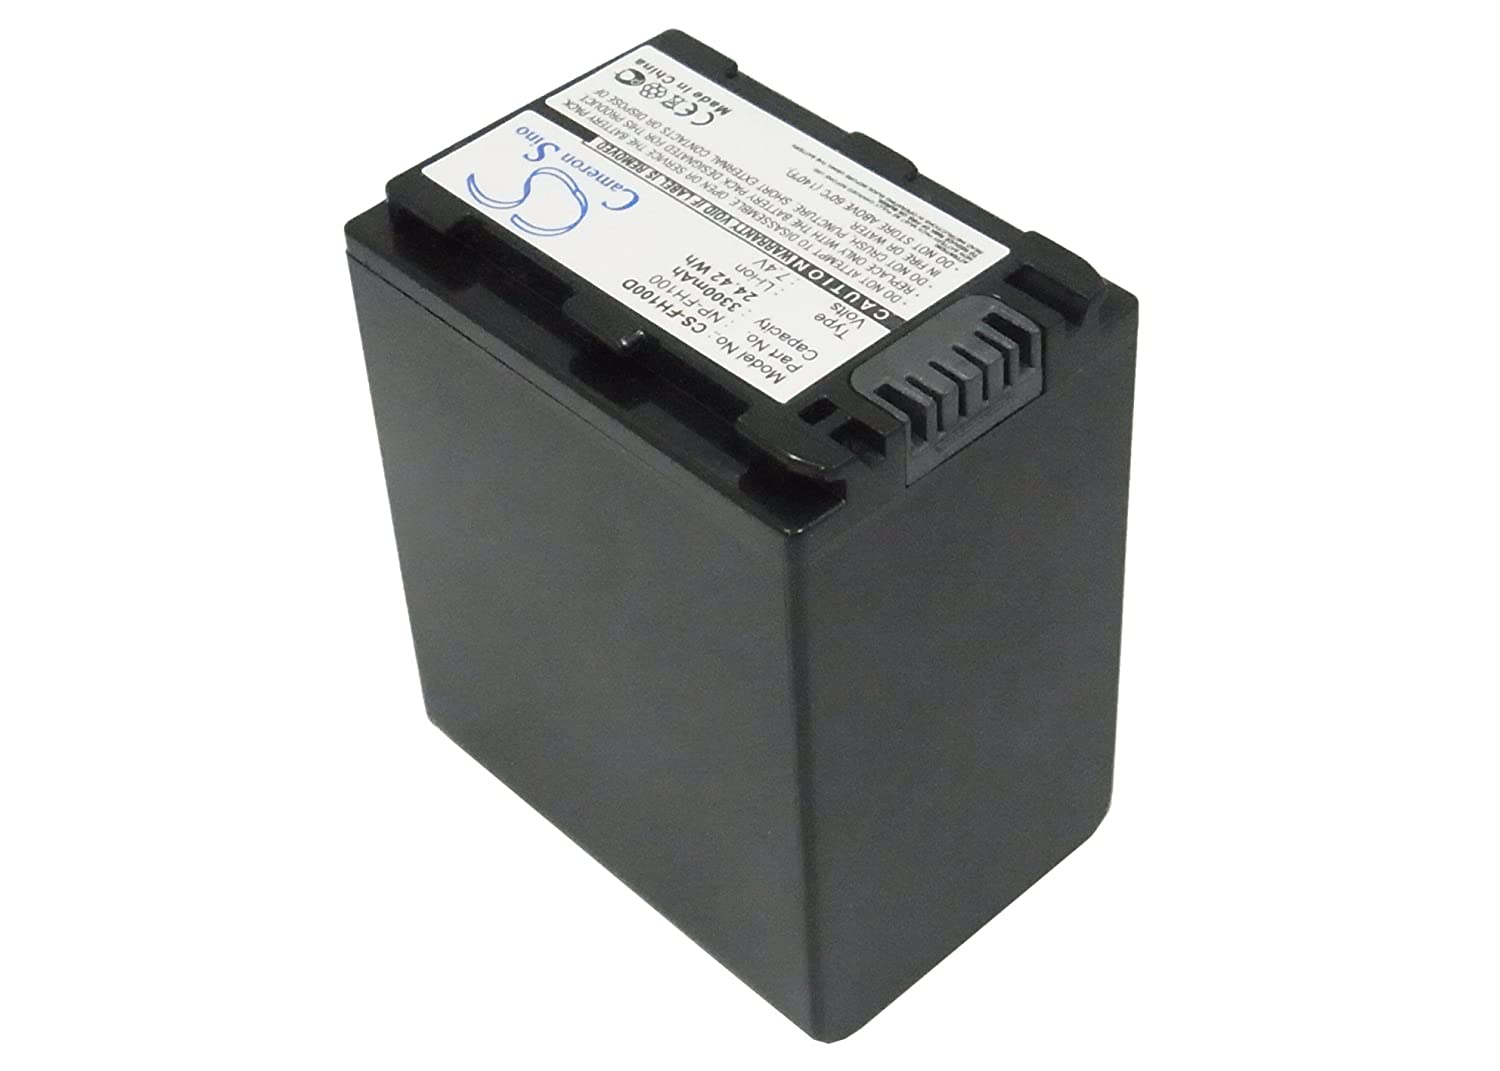 Cameron Sino Rechargeble Battery for Sony dcr-dvd403   B01B5JUF6S